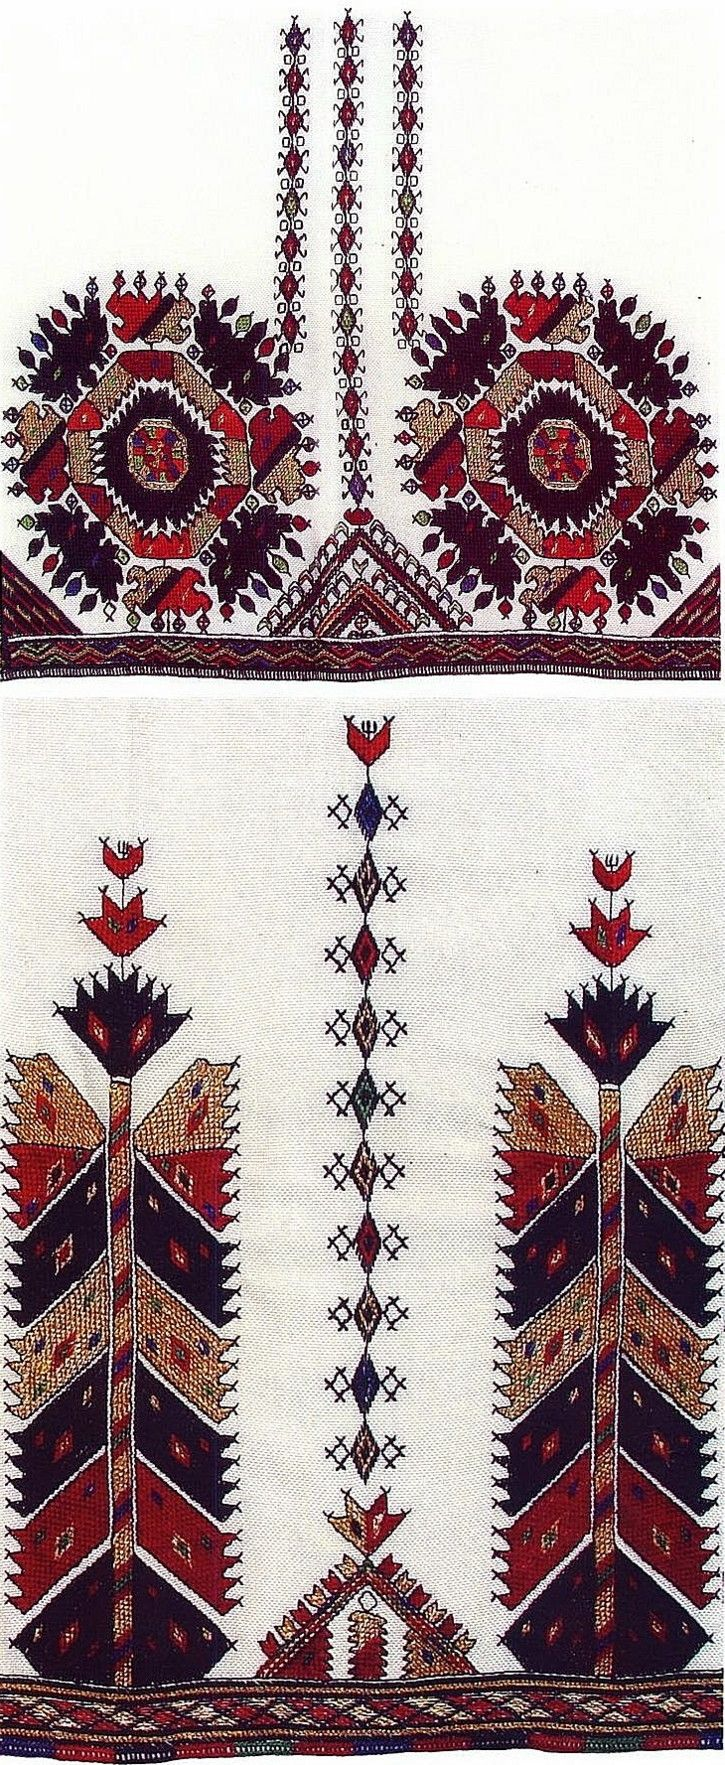 Embroidery motifs on traditional clothing, from Skopska blatija (Macedonia).  Late-Ottoman era, circa 1900.